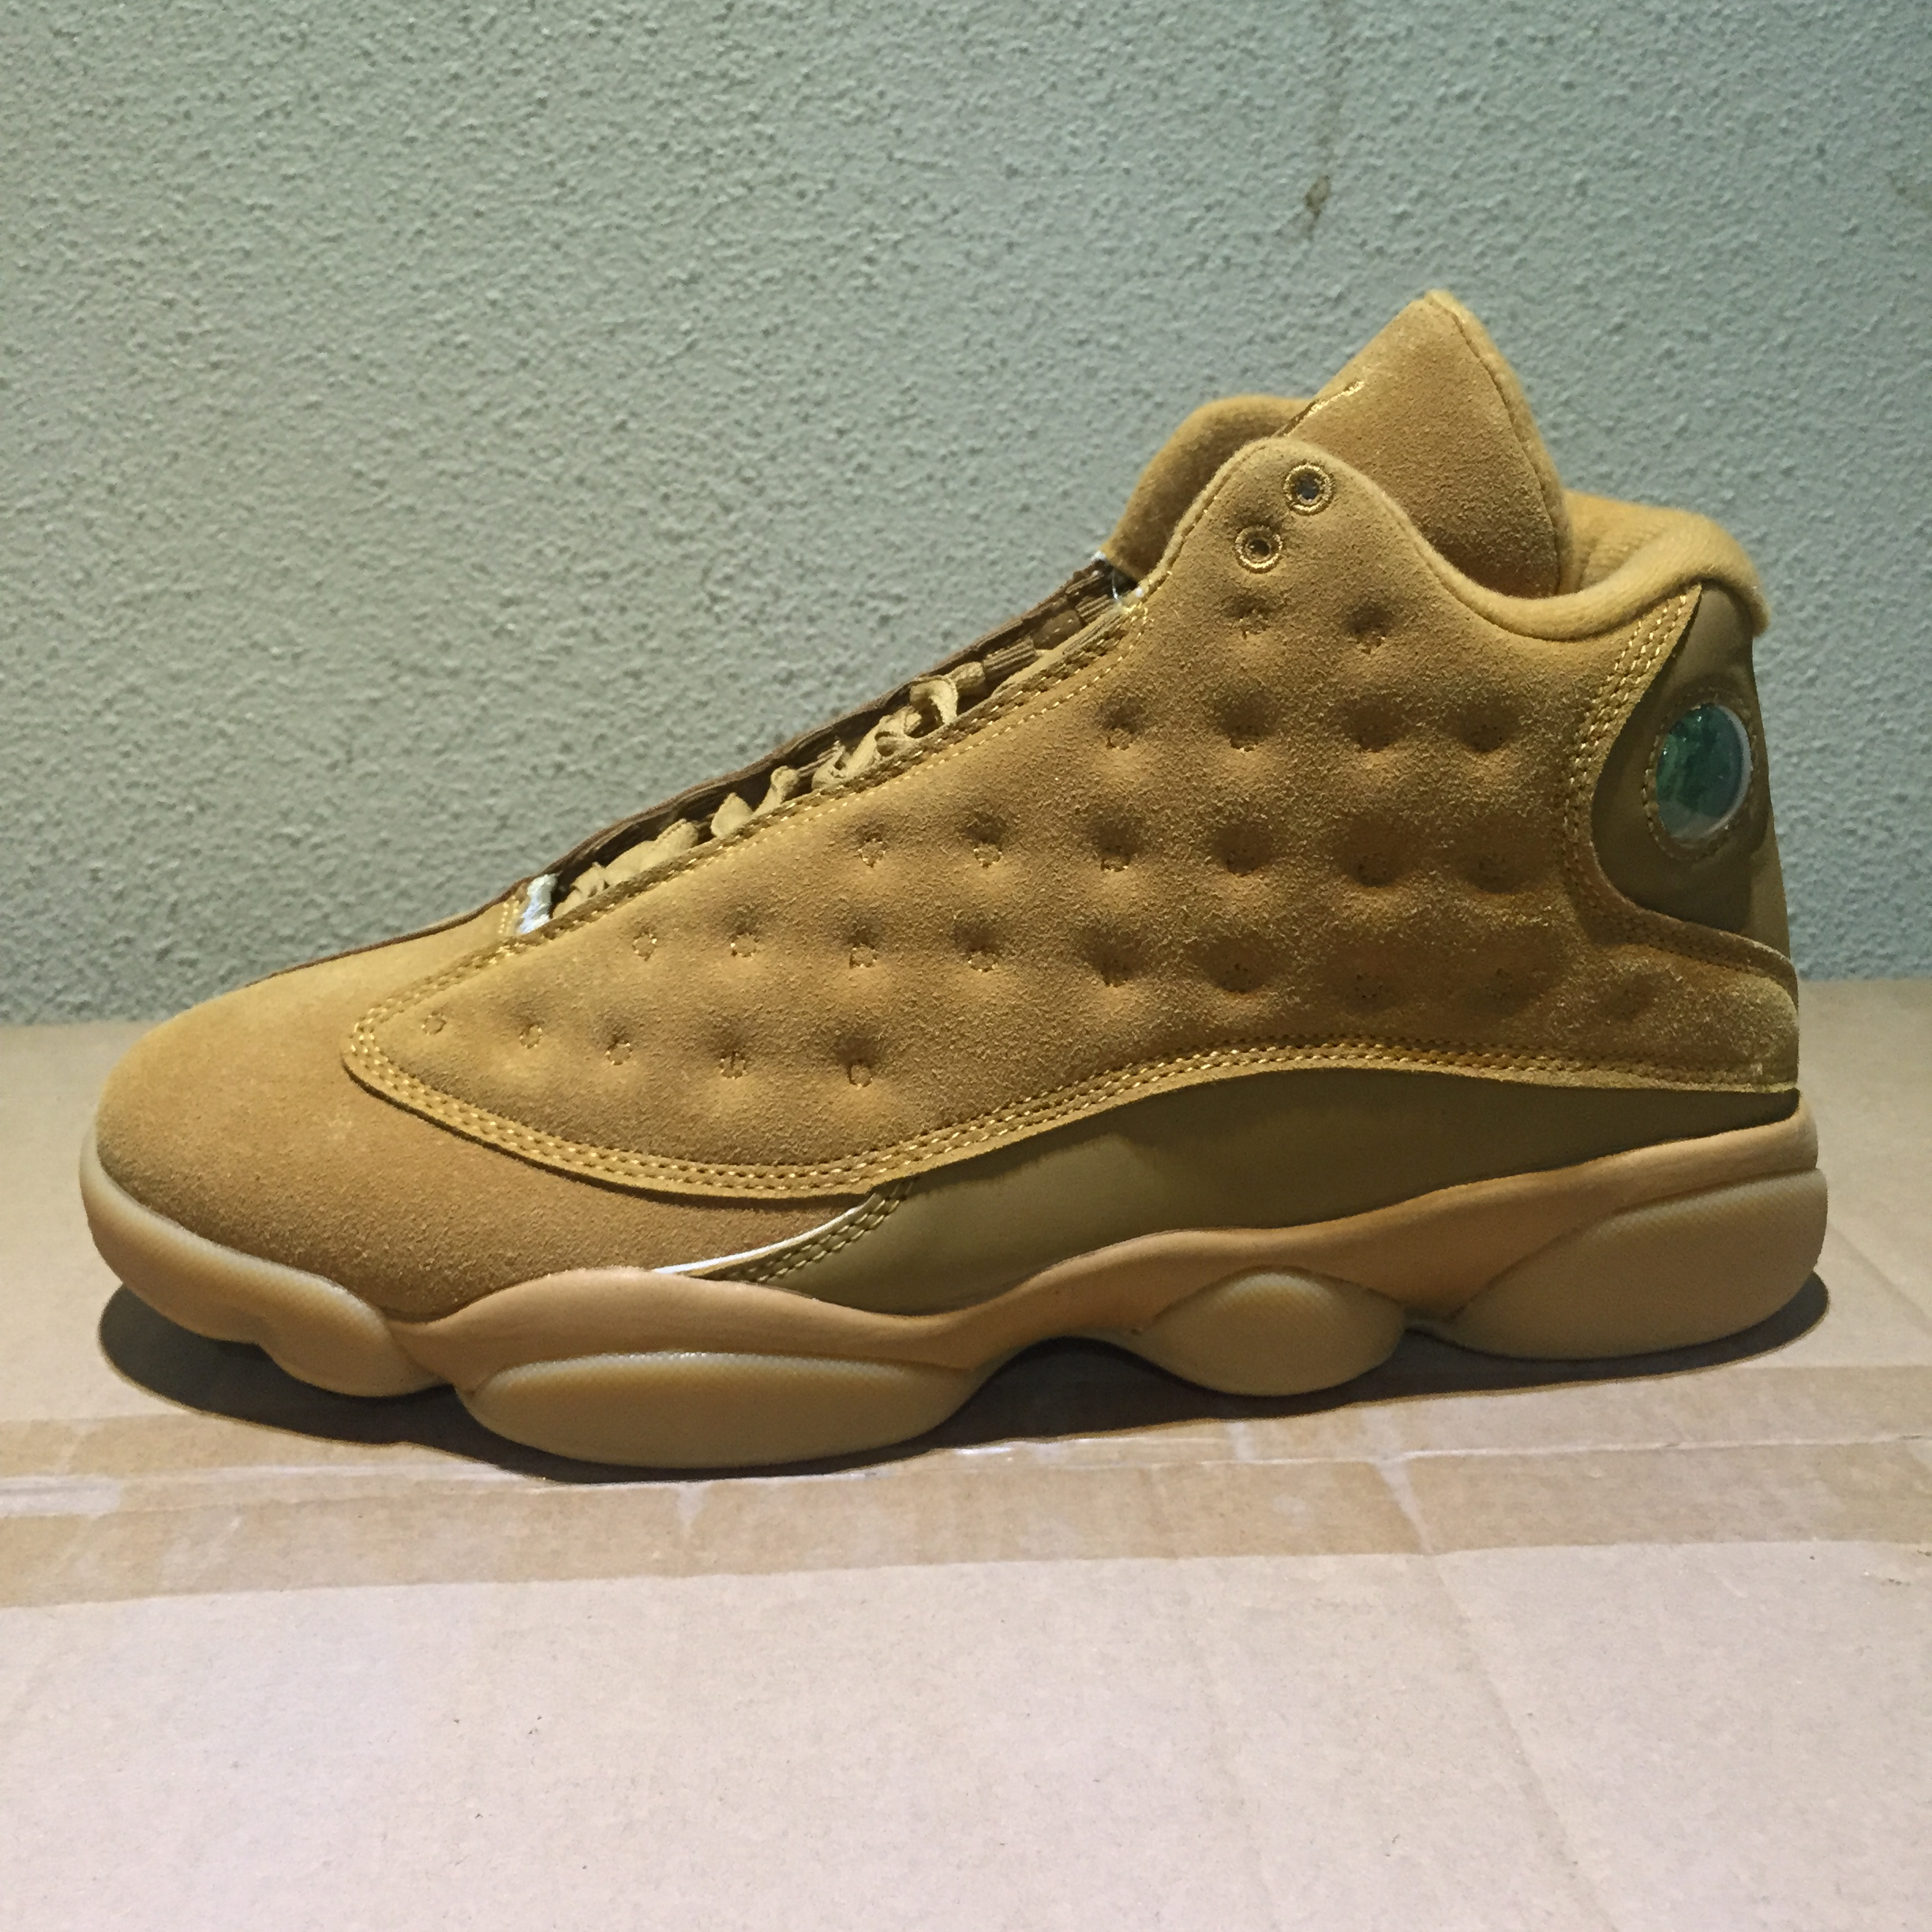 2017 Jordan 13 Retro Wheat Shoes